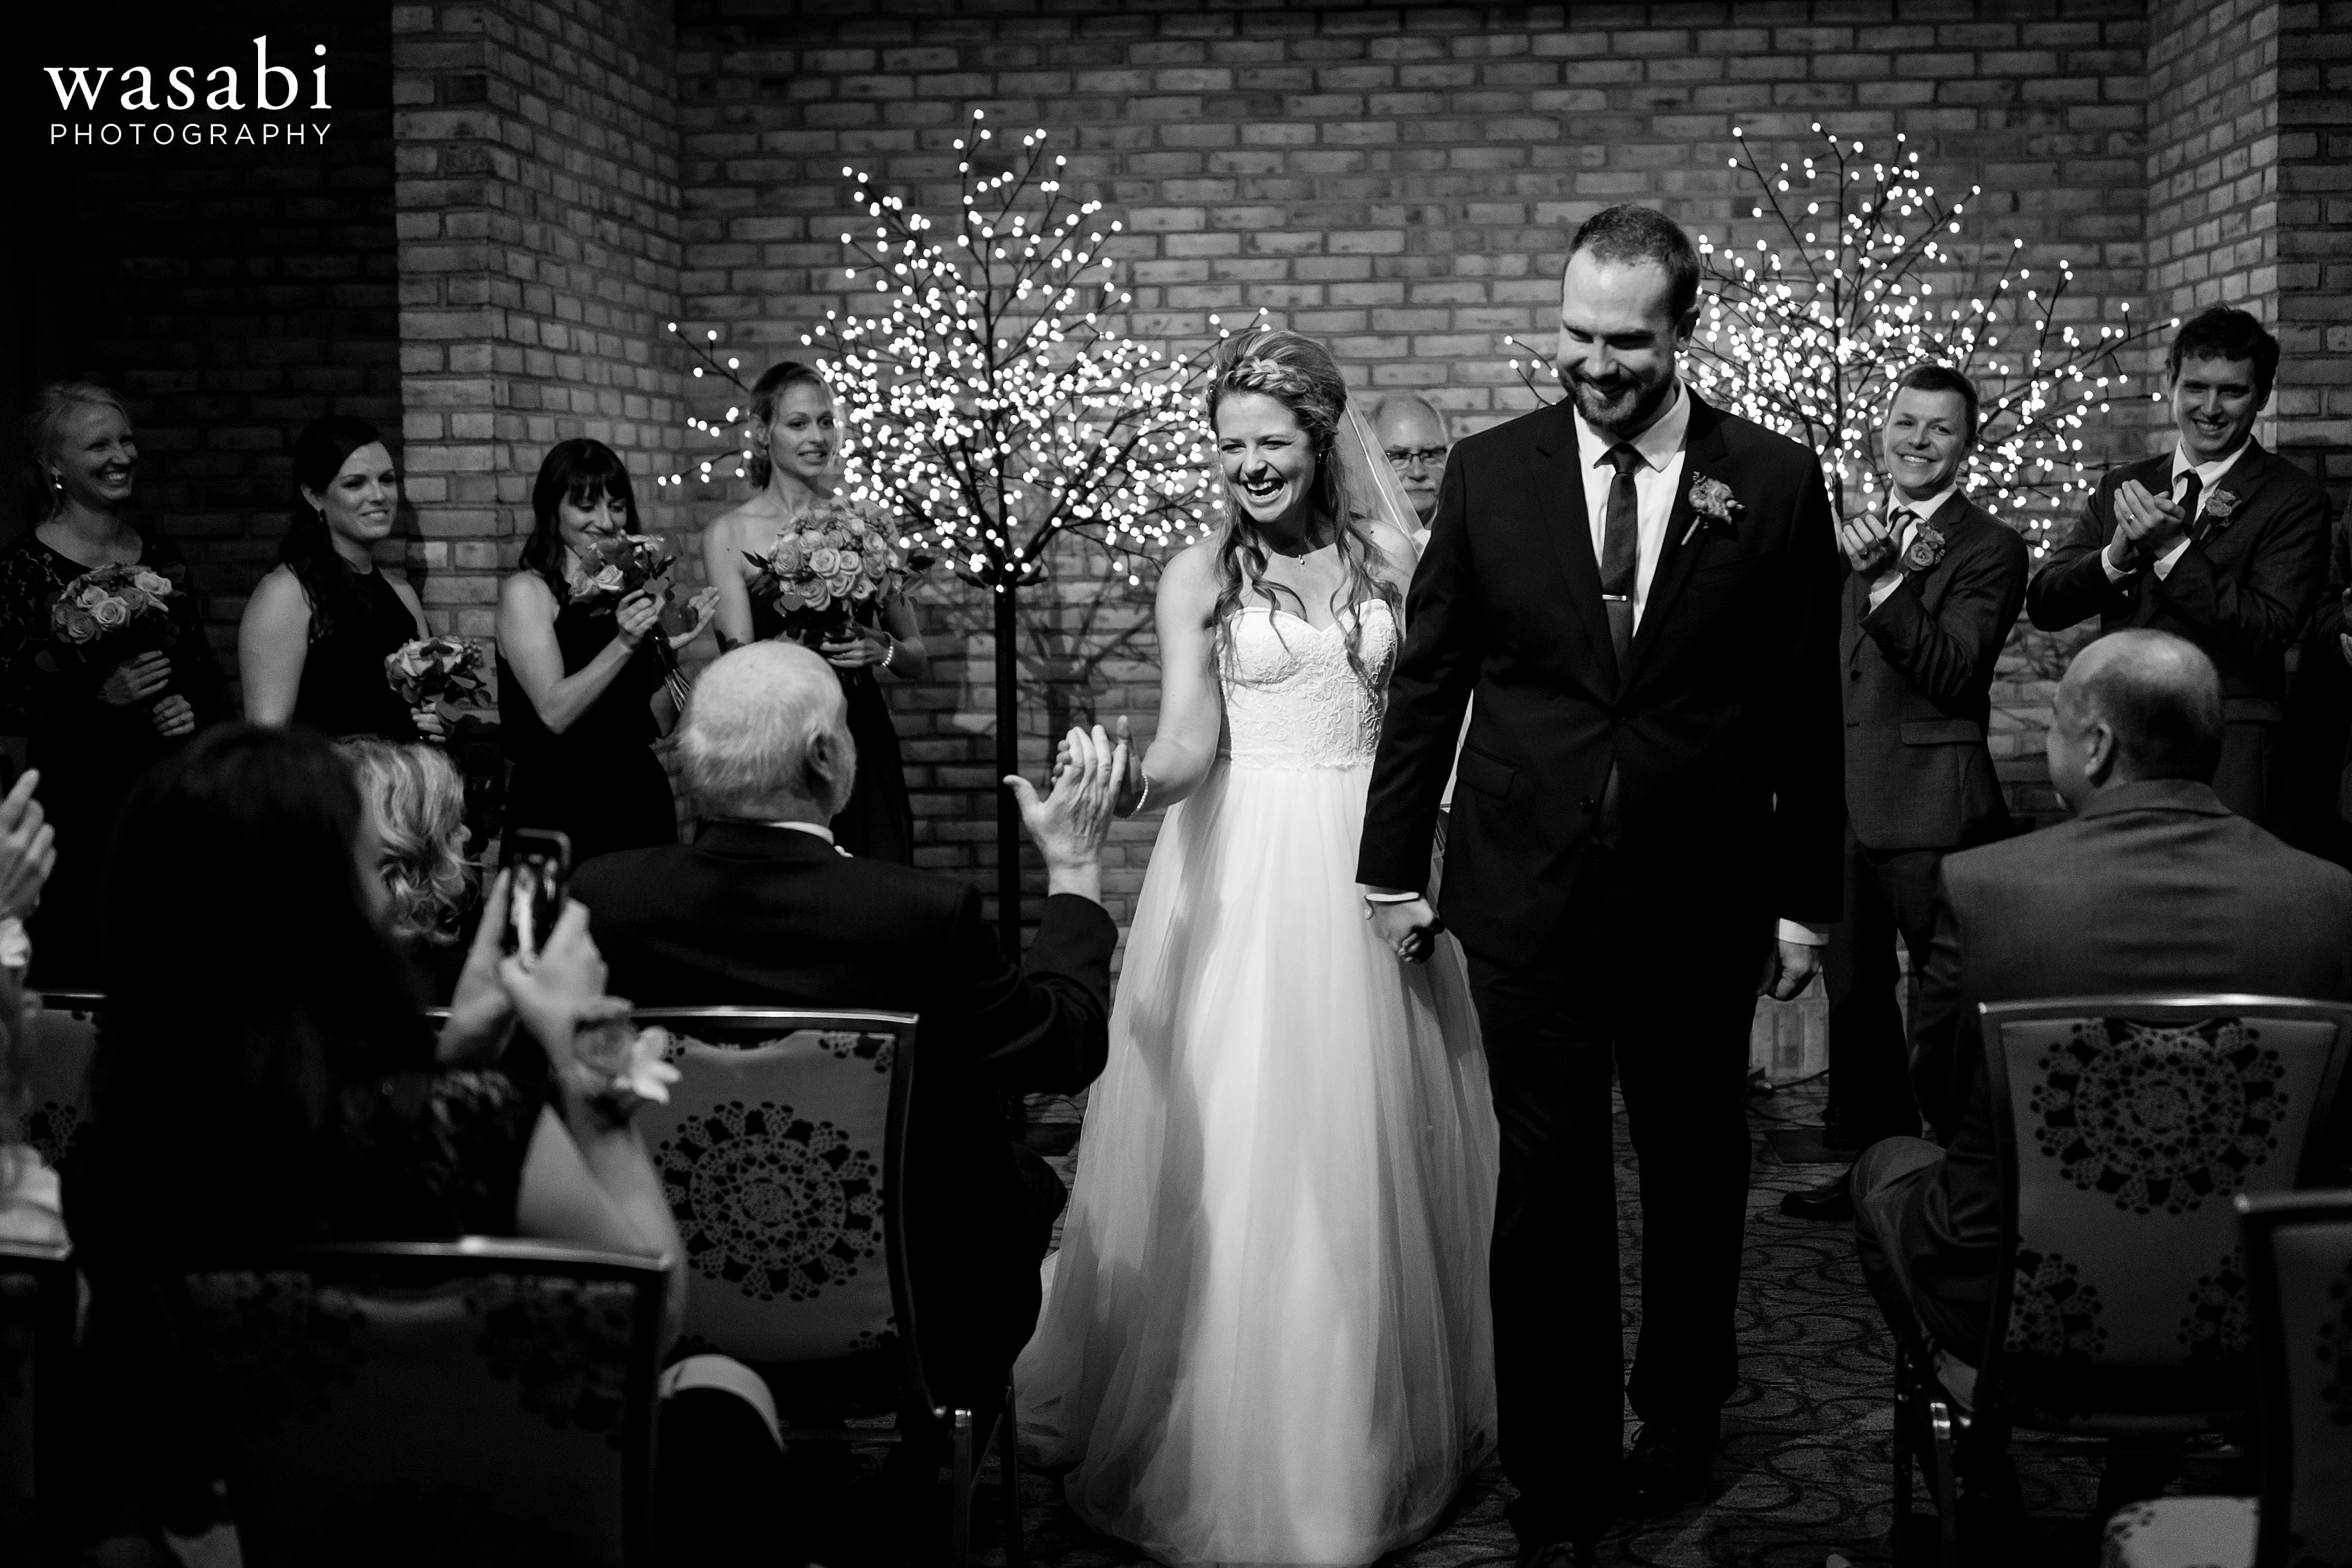 bride high fives her dad after their wedding at Eberhard Center in downtown Grand Rapids